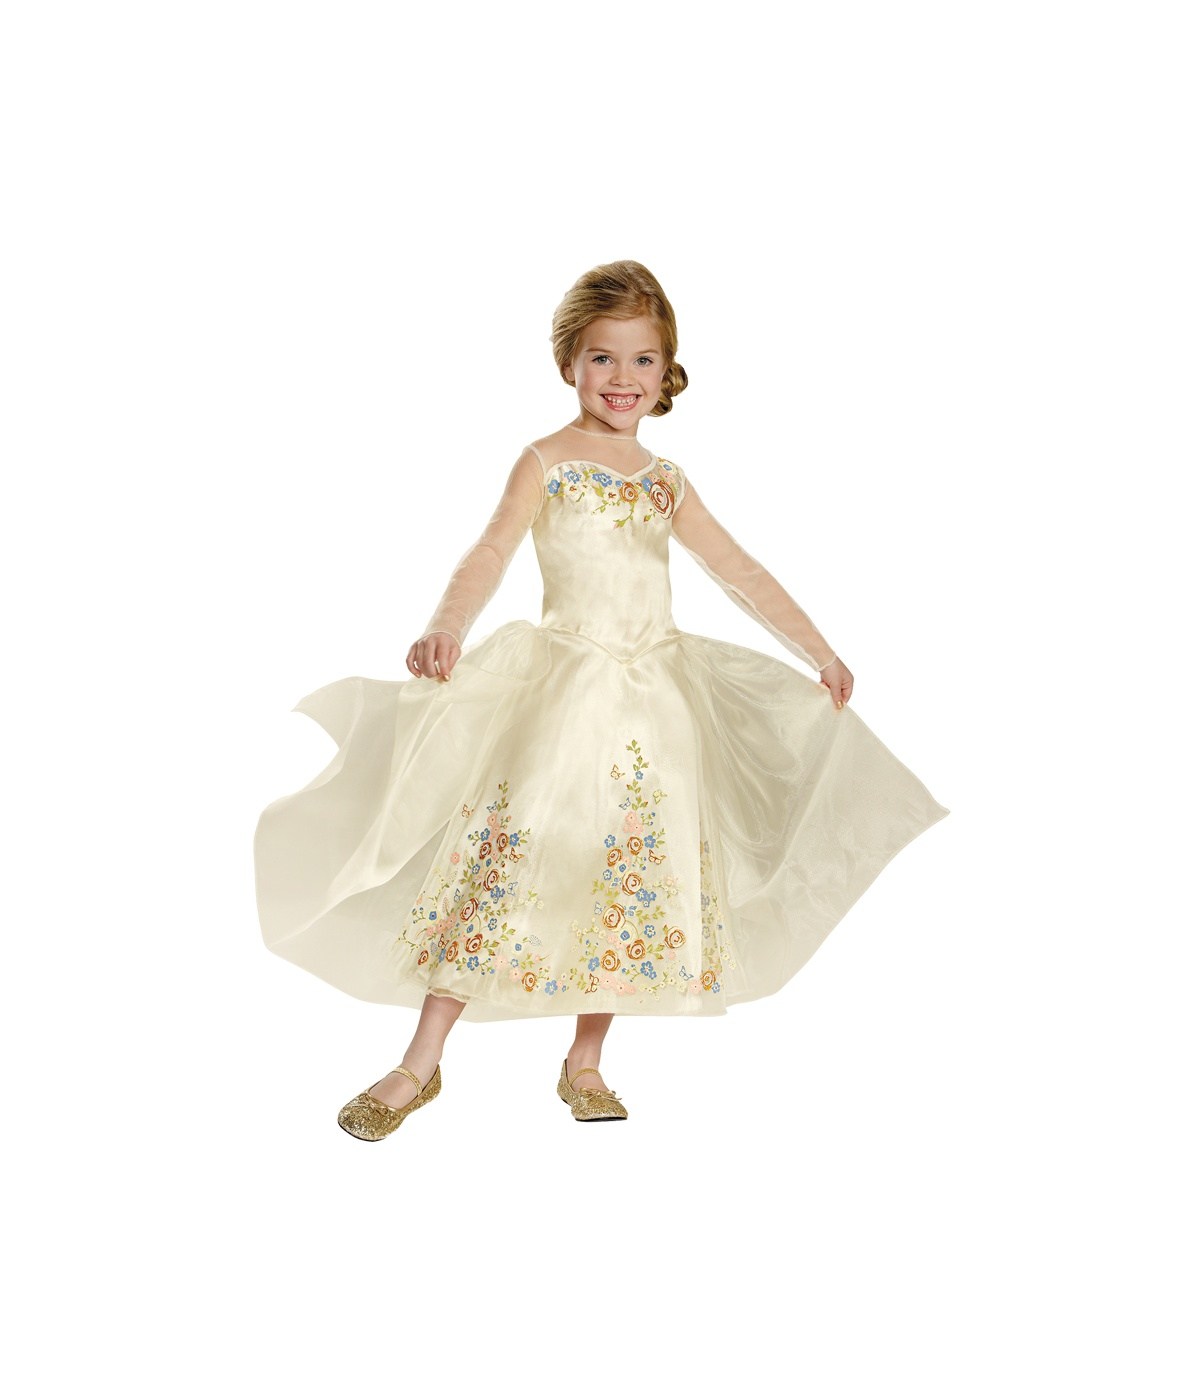 Cinderella Wedding: Disney Cinderella Wedding Dress Girls Costume